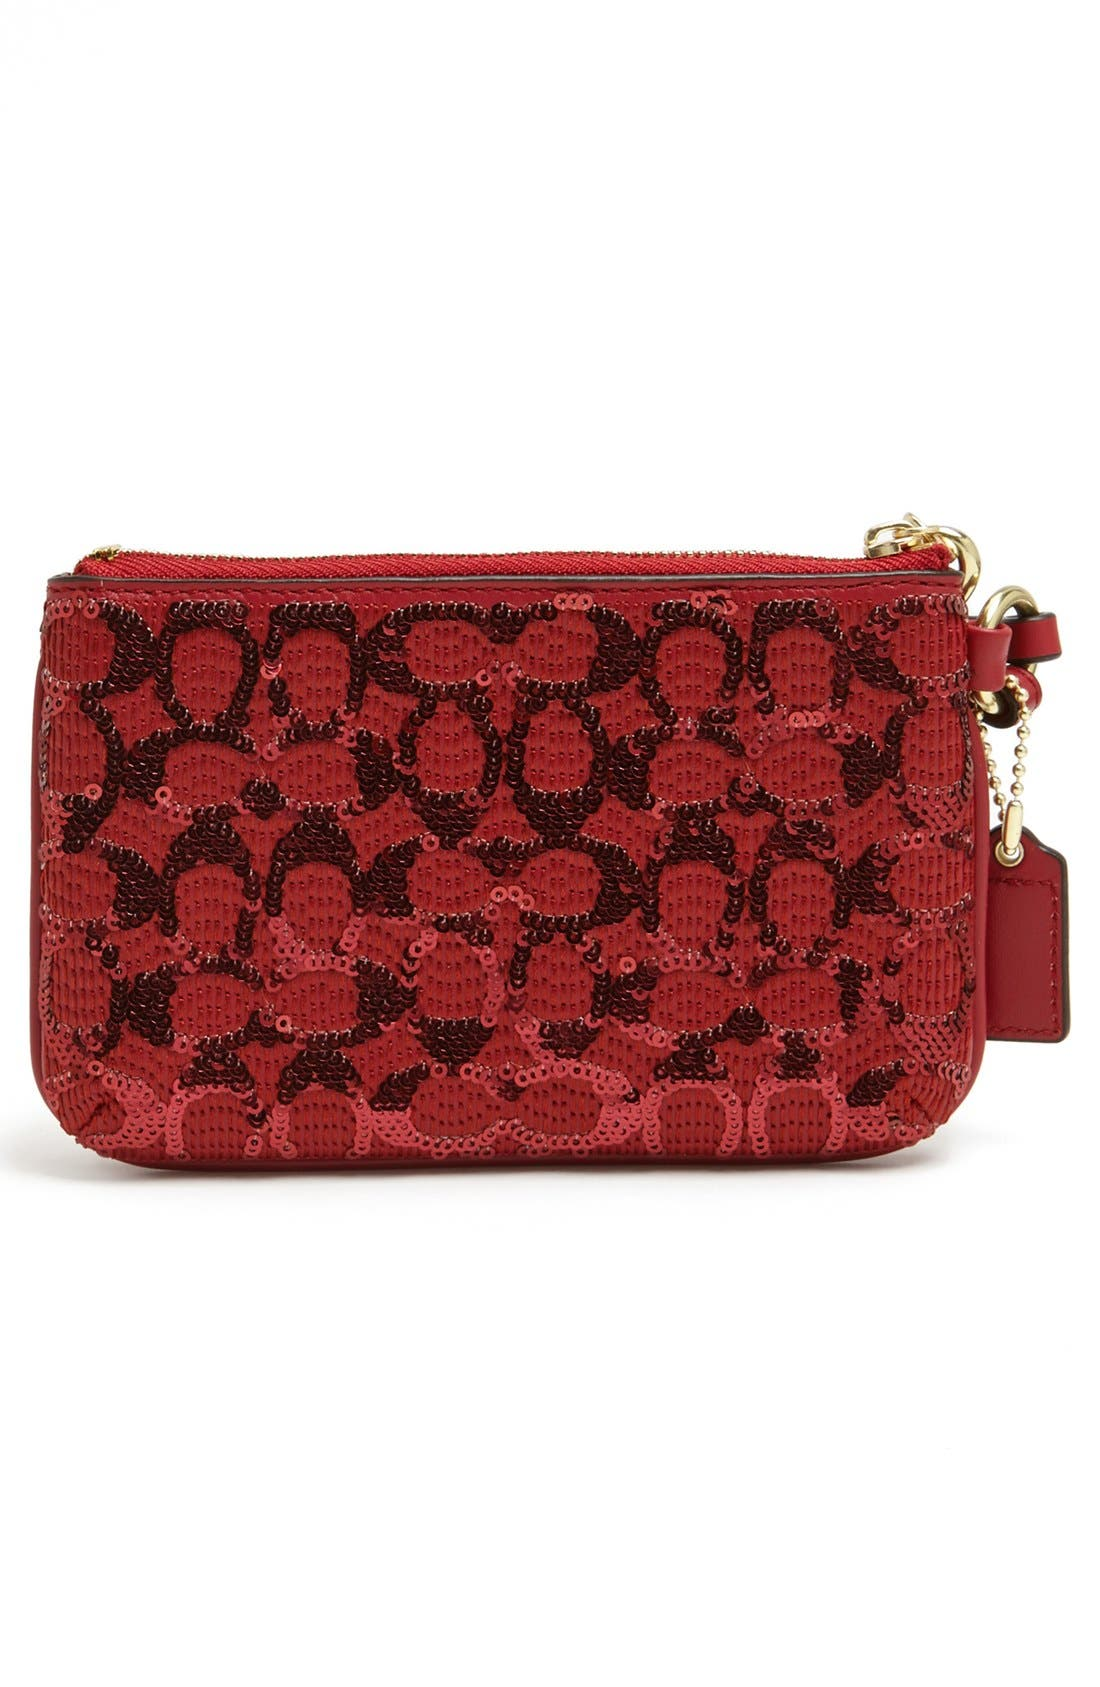 Alternate Image 3  - COACH 'Signature' Sequin Wristlet